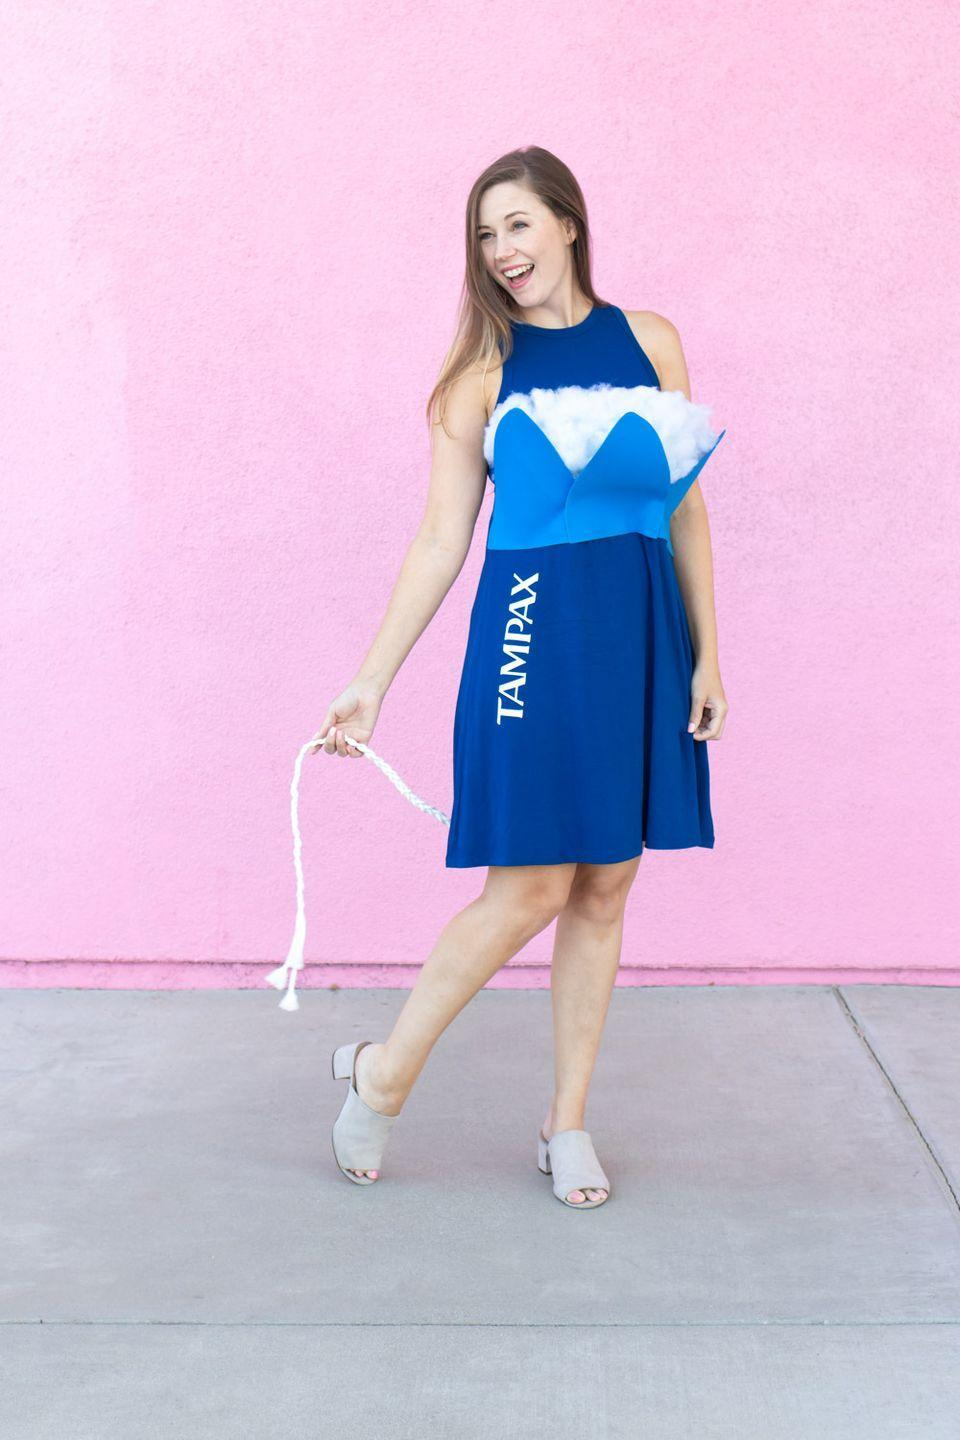 """<p>This bold choice is sure to be a conversation-starter.</p><p><strong>Get the tutorial at <a href=""""https://www.clubcrafted.com/tampon-costume-tampax/"""" rel=""""nofollow noopener"""" target=""""_blank"""" data-ylk=""""slk:Club Crafted"""" class=""""link rapid-noclick-resp"""">Club Crafted</a>.</strong></p><p><a class=""""link rapid-noclick-resp"""" href=""""https://www.amazon.com/Vintage-Flared-Sleeveless-line-CL698-6/dp/B07MQYJLDP/ref=sr_1_5?tag=syn-yahoo-20&ascsubtag=%5Bartid%7C10050.g.21600836%5Bsrc%7Cyahoo-us"""" rel=""""nofollow noopener"""" target=""""_blank"""" data-ylk=""""slk:Shop Blue Dresses"""">Shop Blue Dresses</a></p>"""